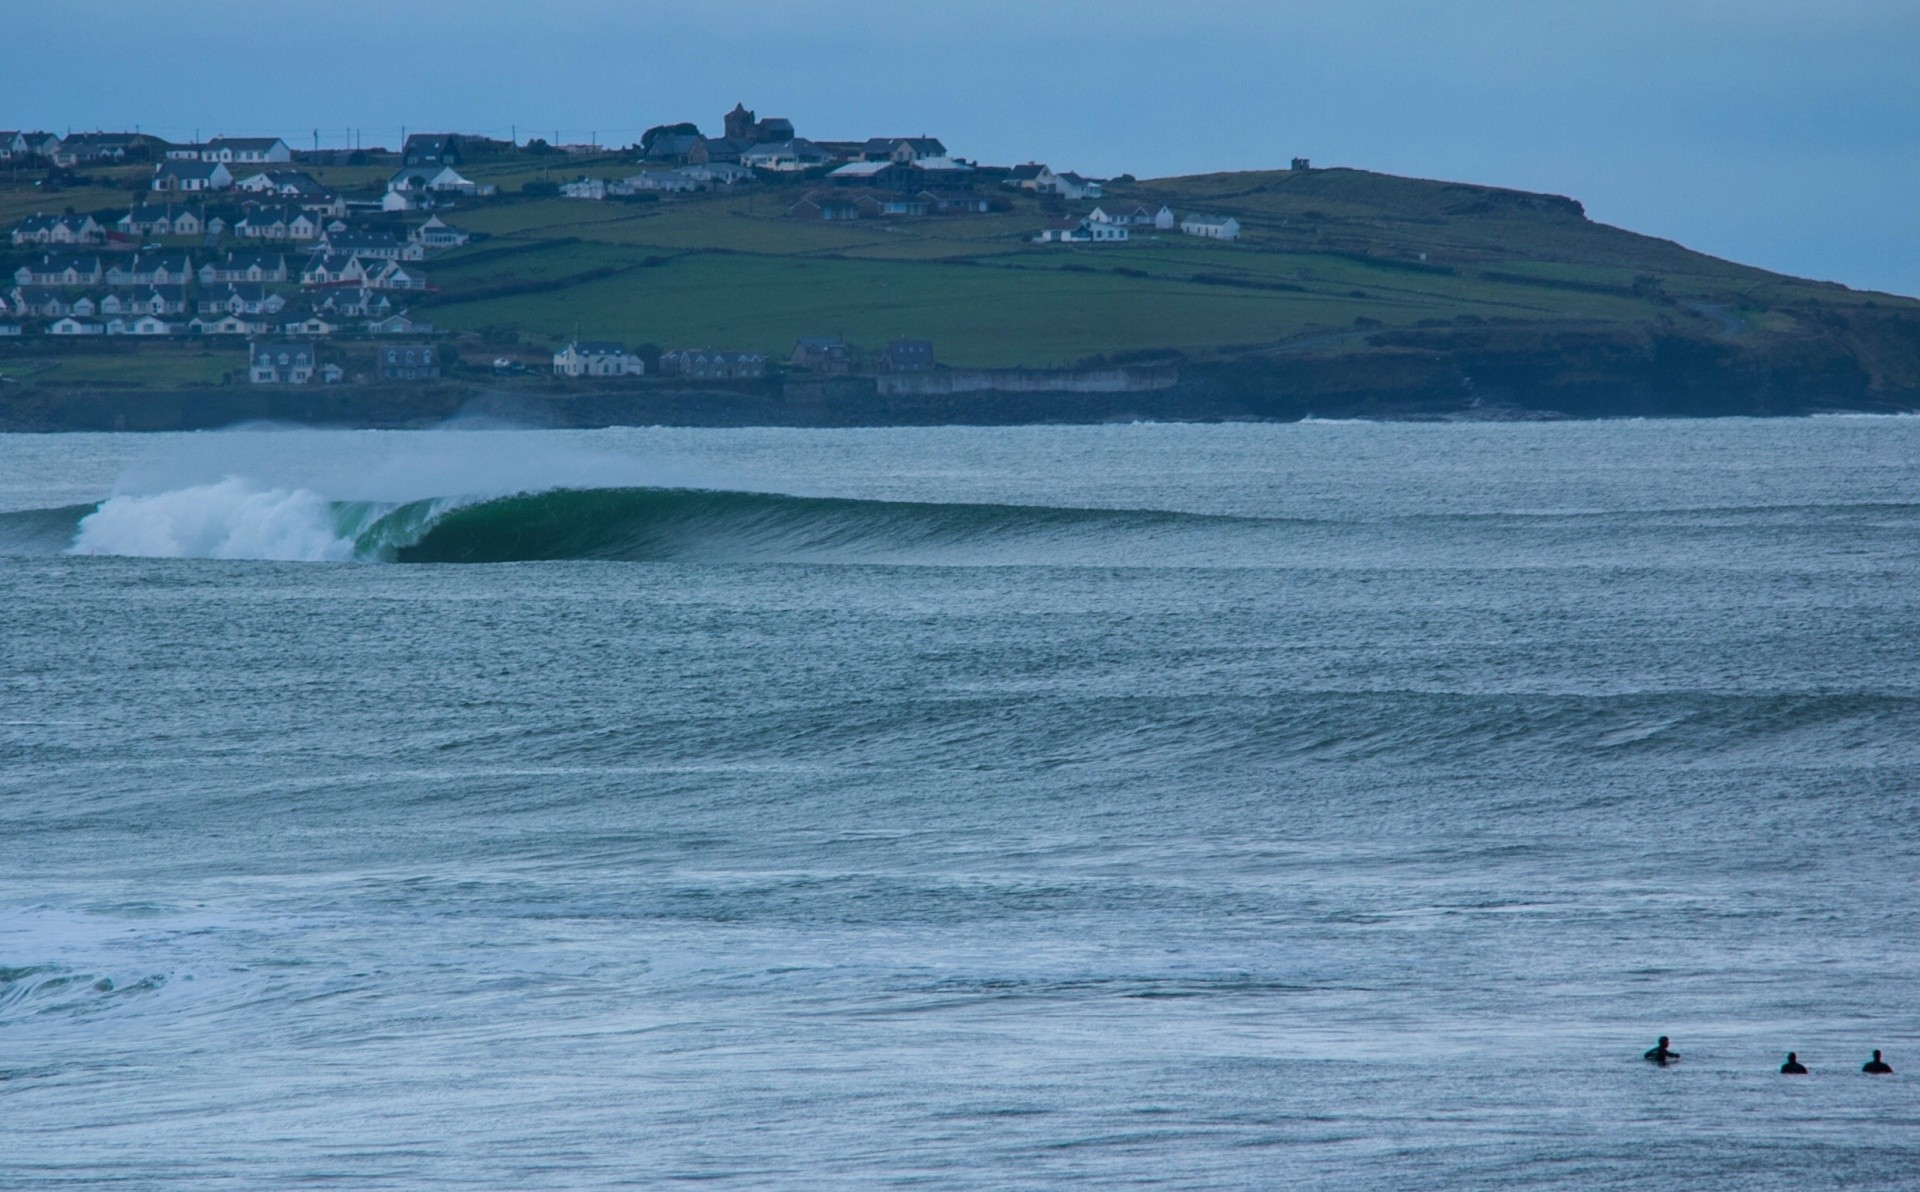 mattamos91's photo of Bundoran - The Peak